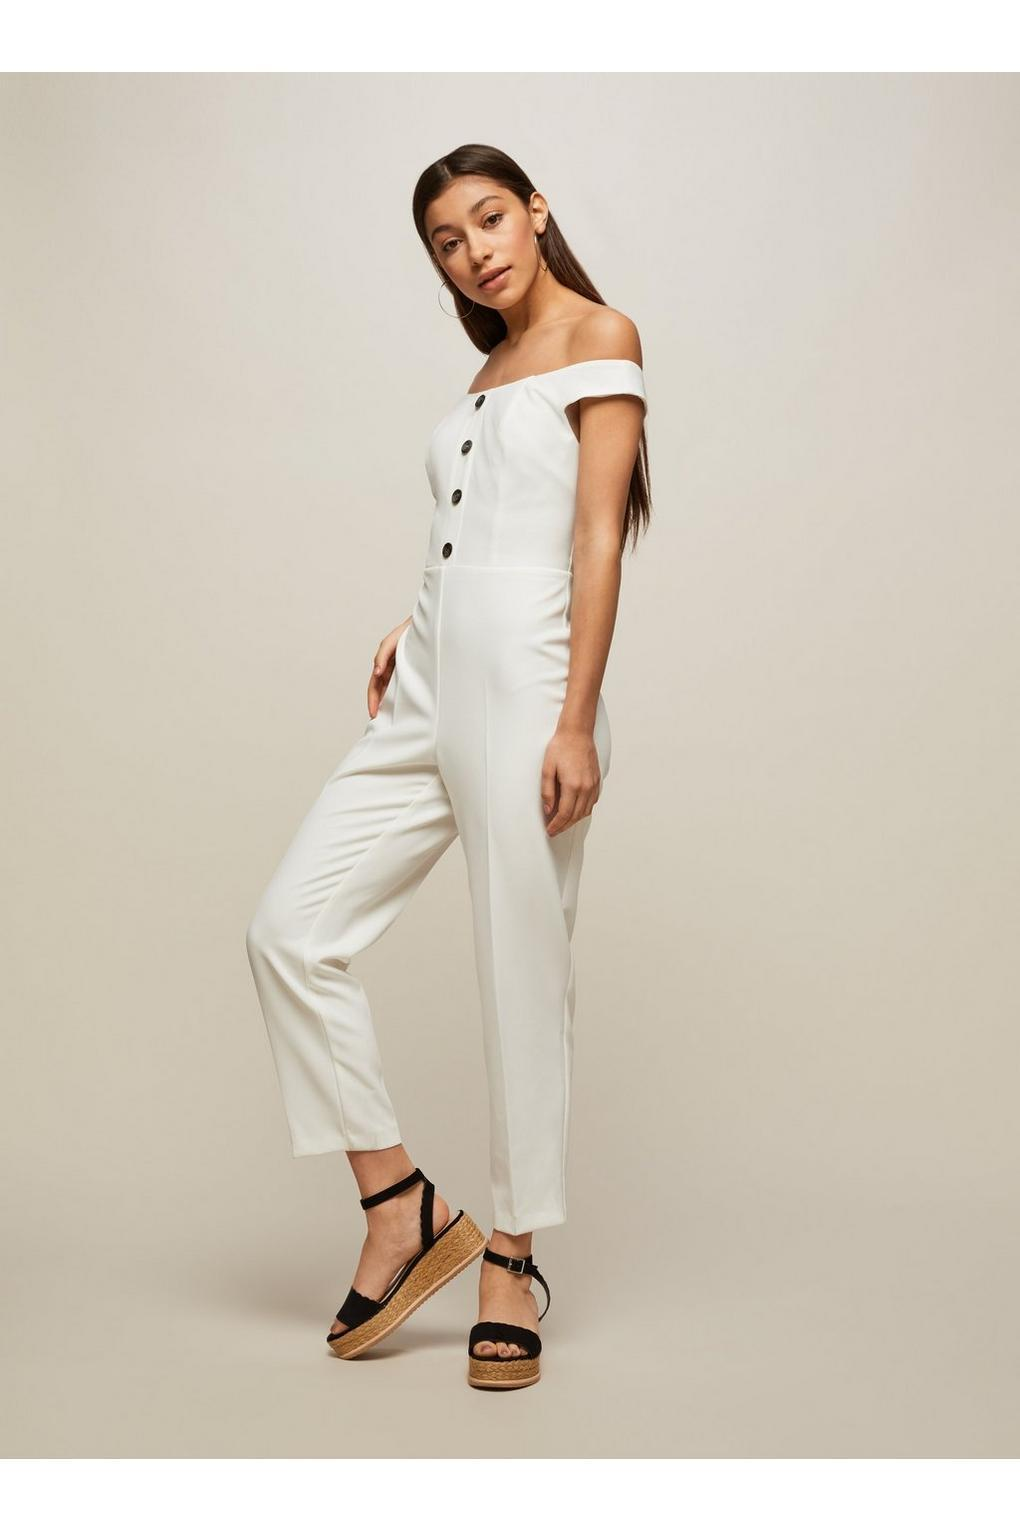 6a7934909a2 Gallery. Previously sold at  Miss Selfridge · Women s Sheer Jumpsuits ...